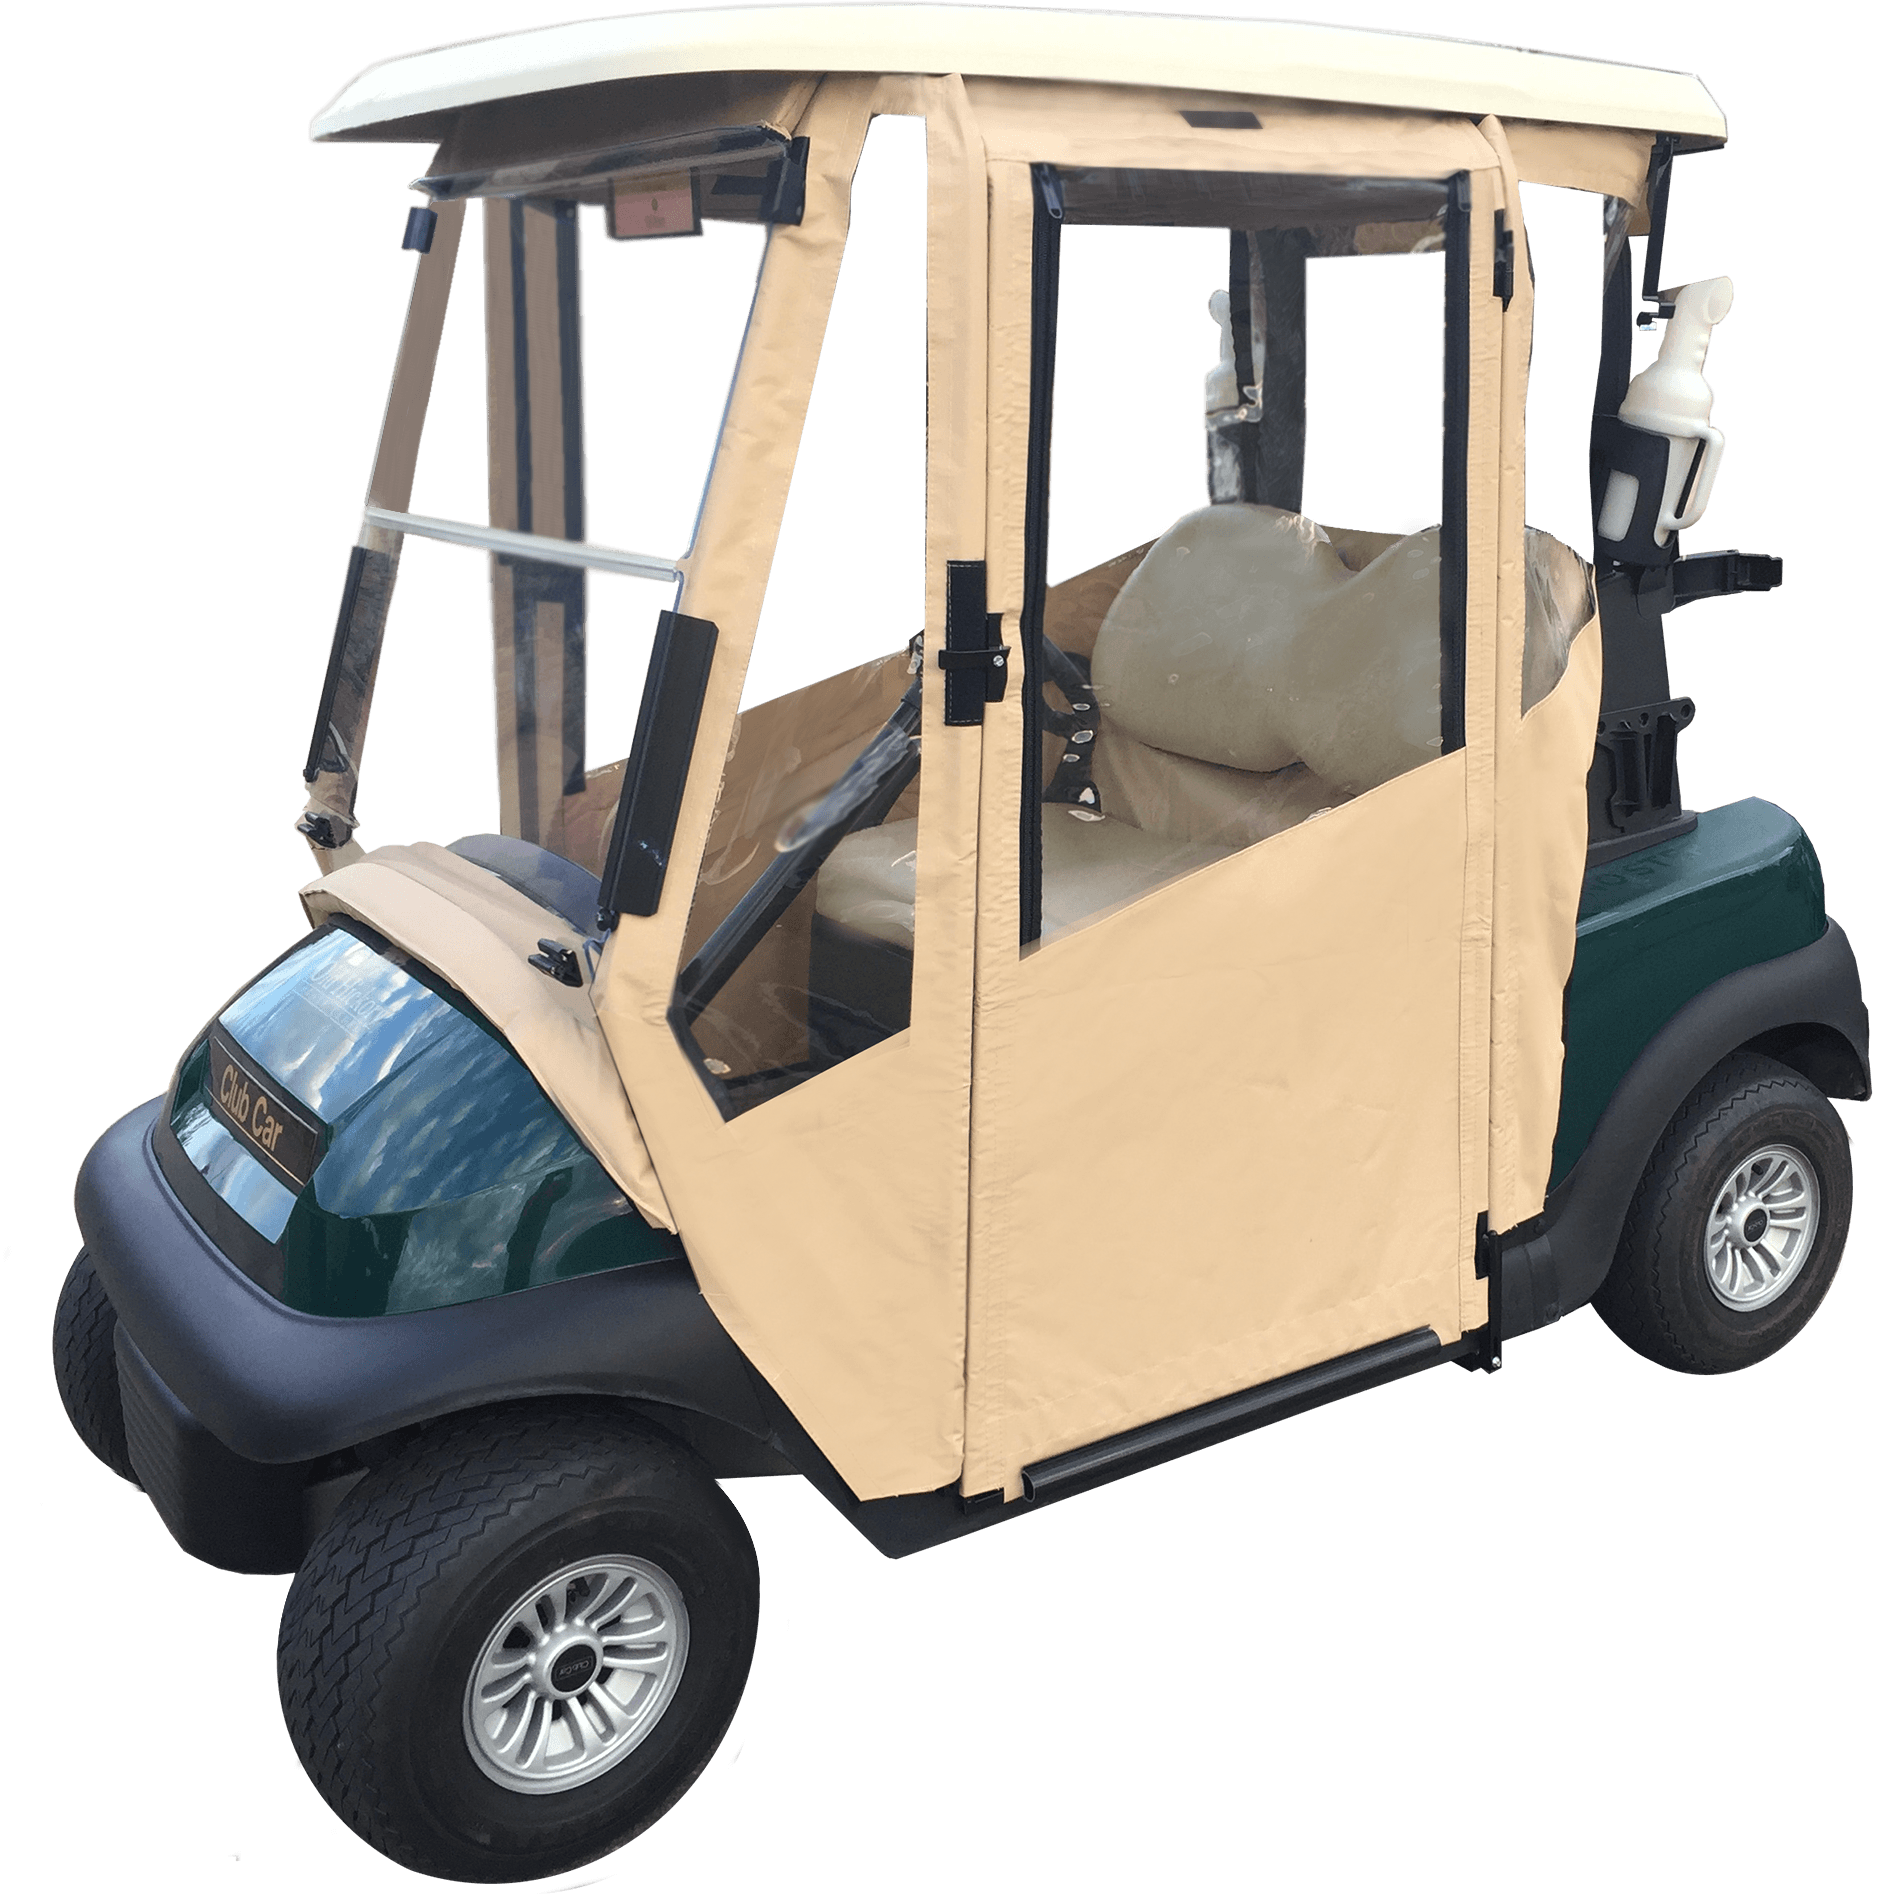 DoorWorks Hinged Door Golf Cart Enclosures - Club Car Precedent / Onward  sc 1 st  Walmart & DoorWorks Hinged Door Golf Cart Enclosures - Club Car Precedent ...